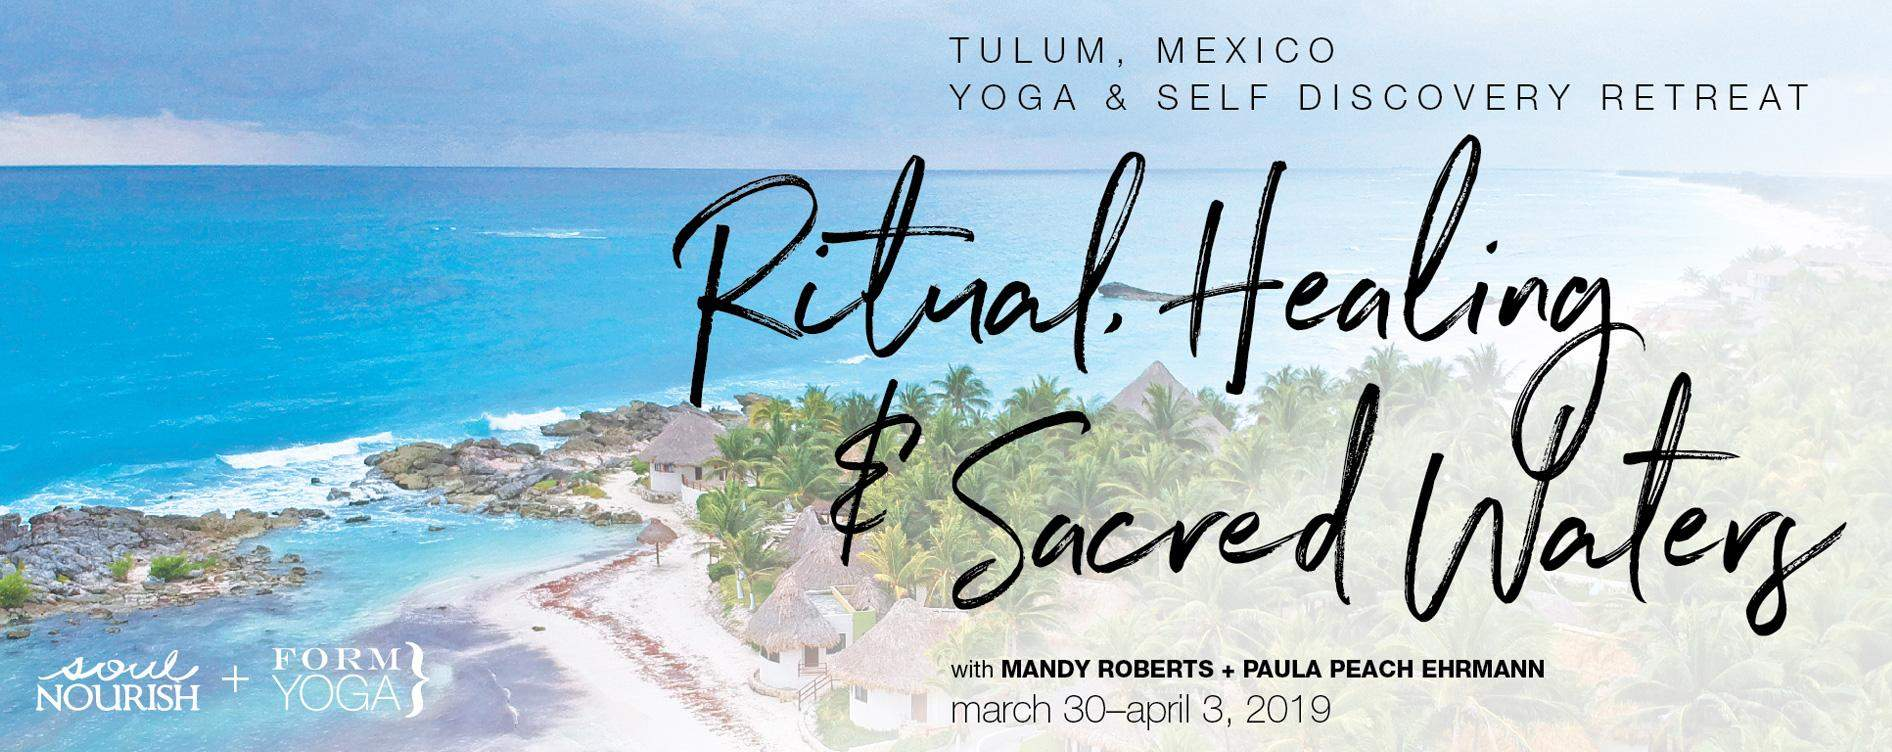 tulum-mexico-yoga-discovery-retreat